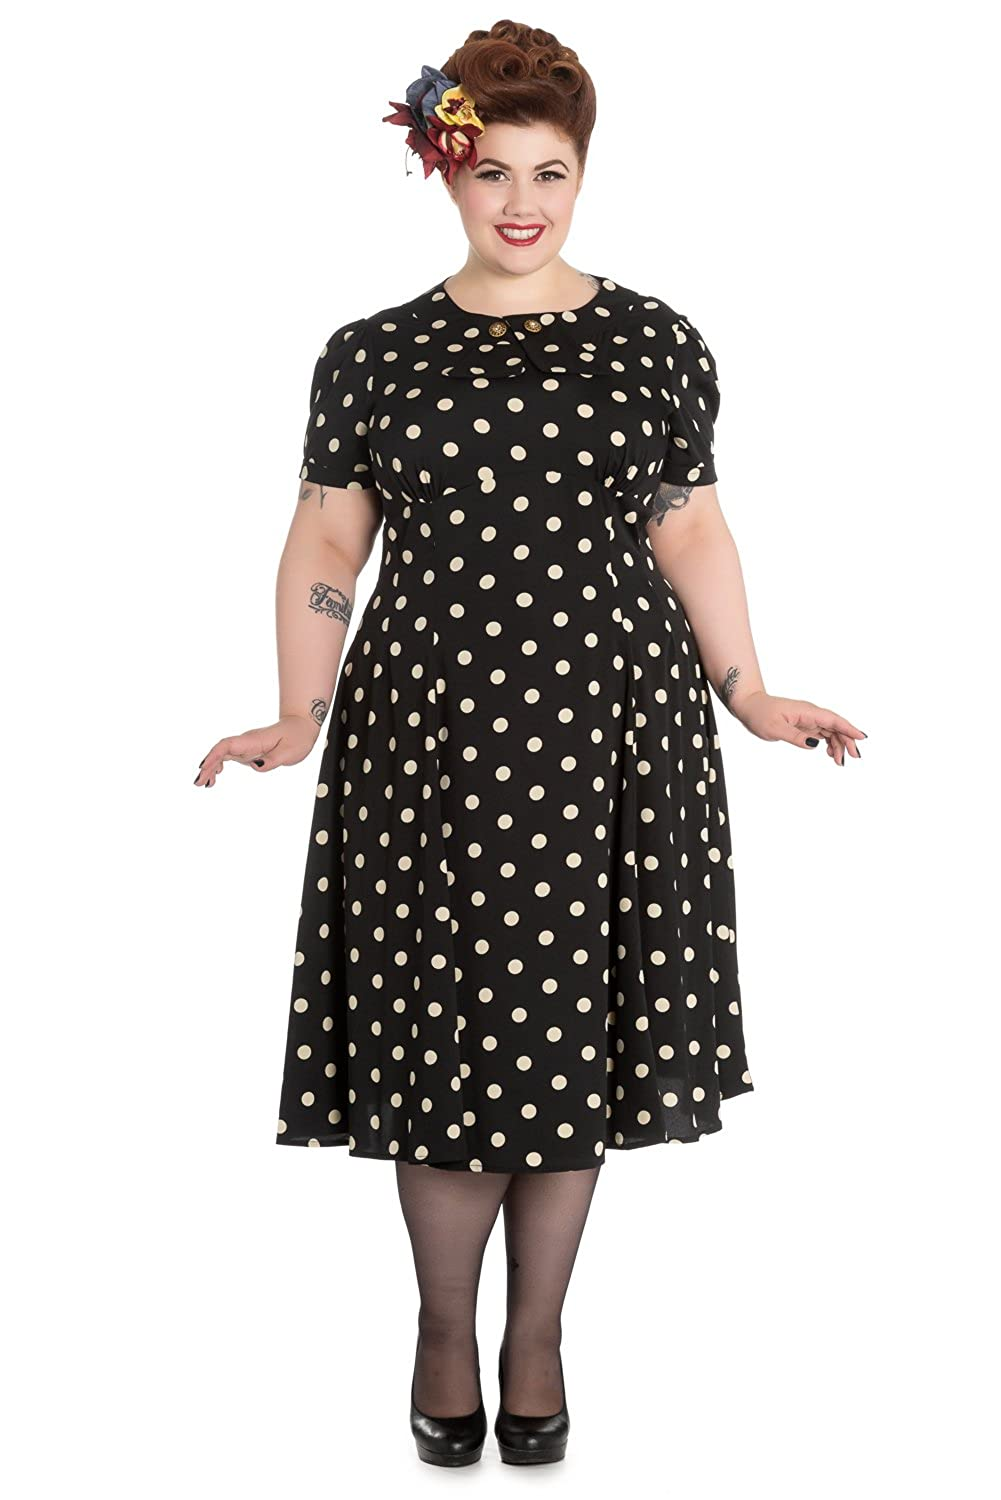 1930s Art Deco Plus Size Dresses | Tea Dresses, Party Dresses Hell Bunny Plus Size Sweet Office Lady Black Mod Polka Dot Dress $72.00 AT vintagedancer.com